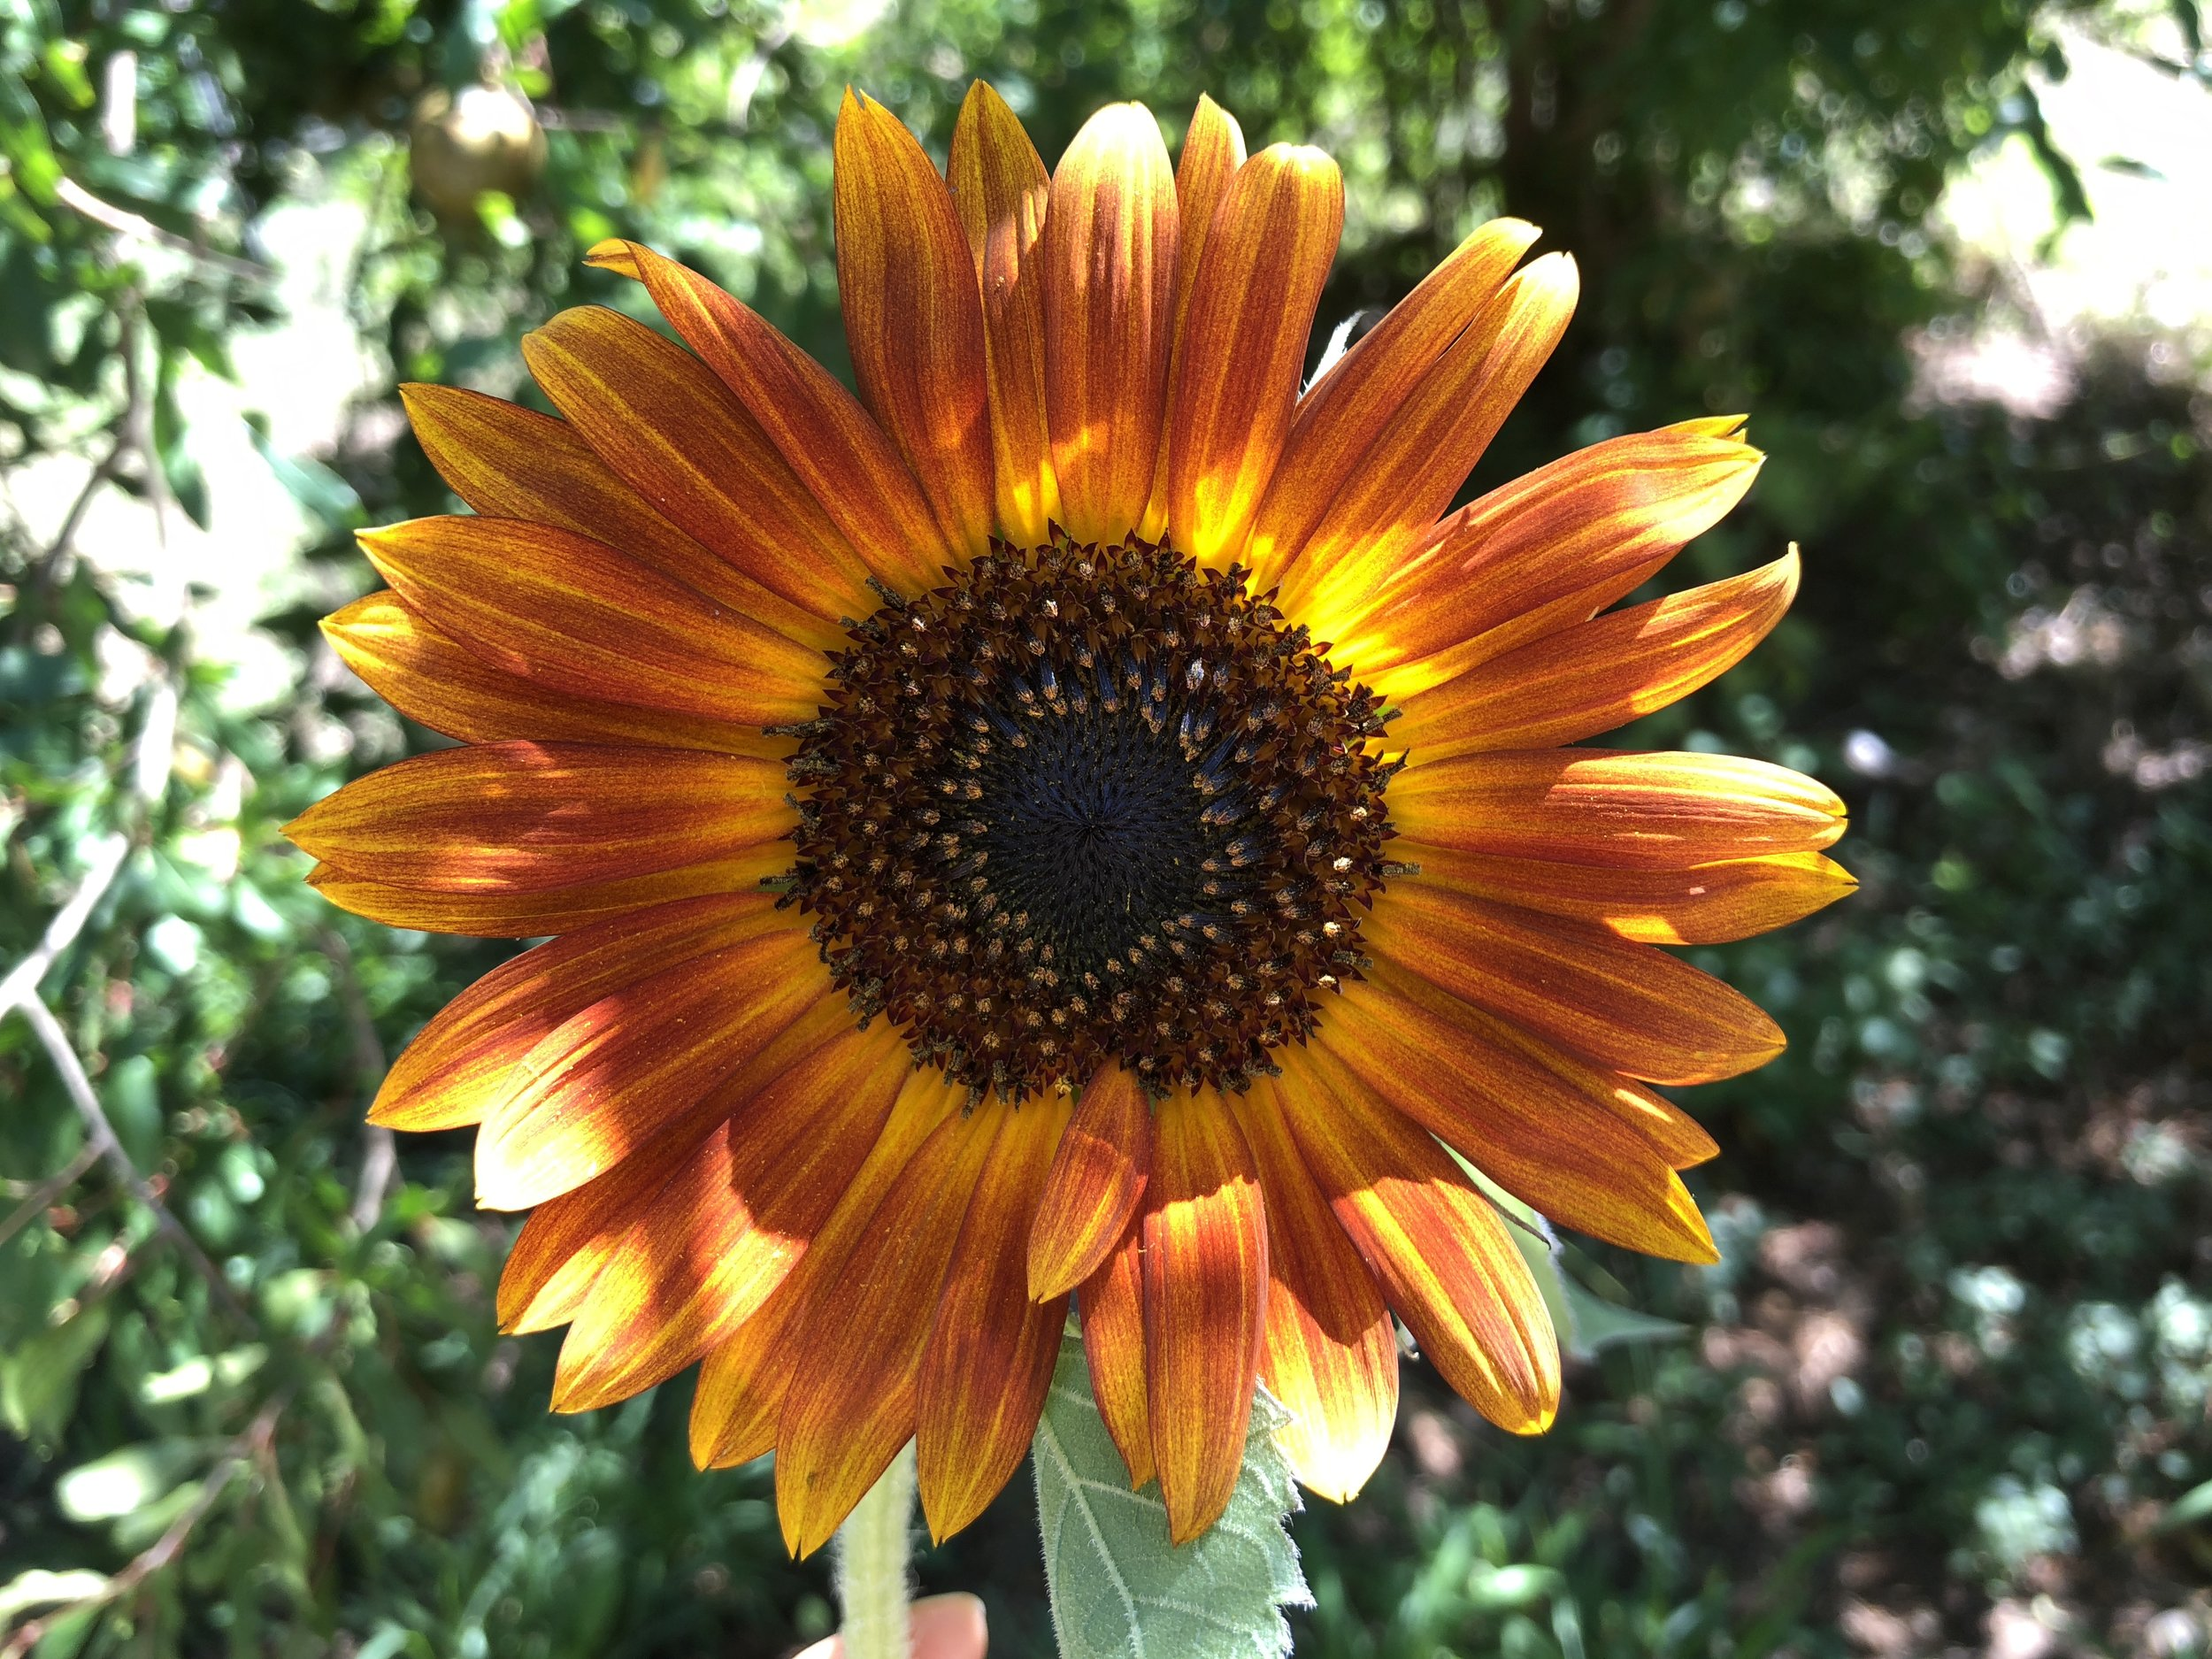 Red Sunflower - This one was more bronze, but that glow around the center is stunning.